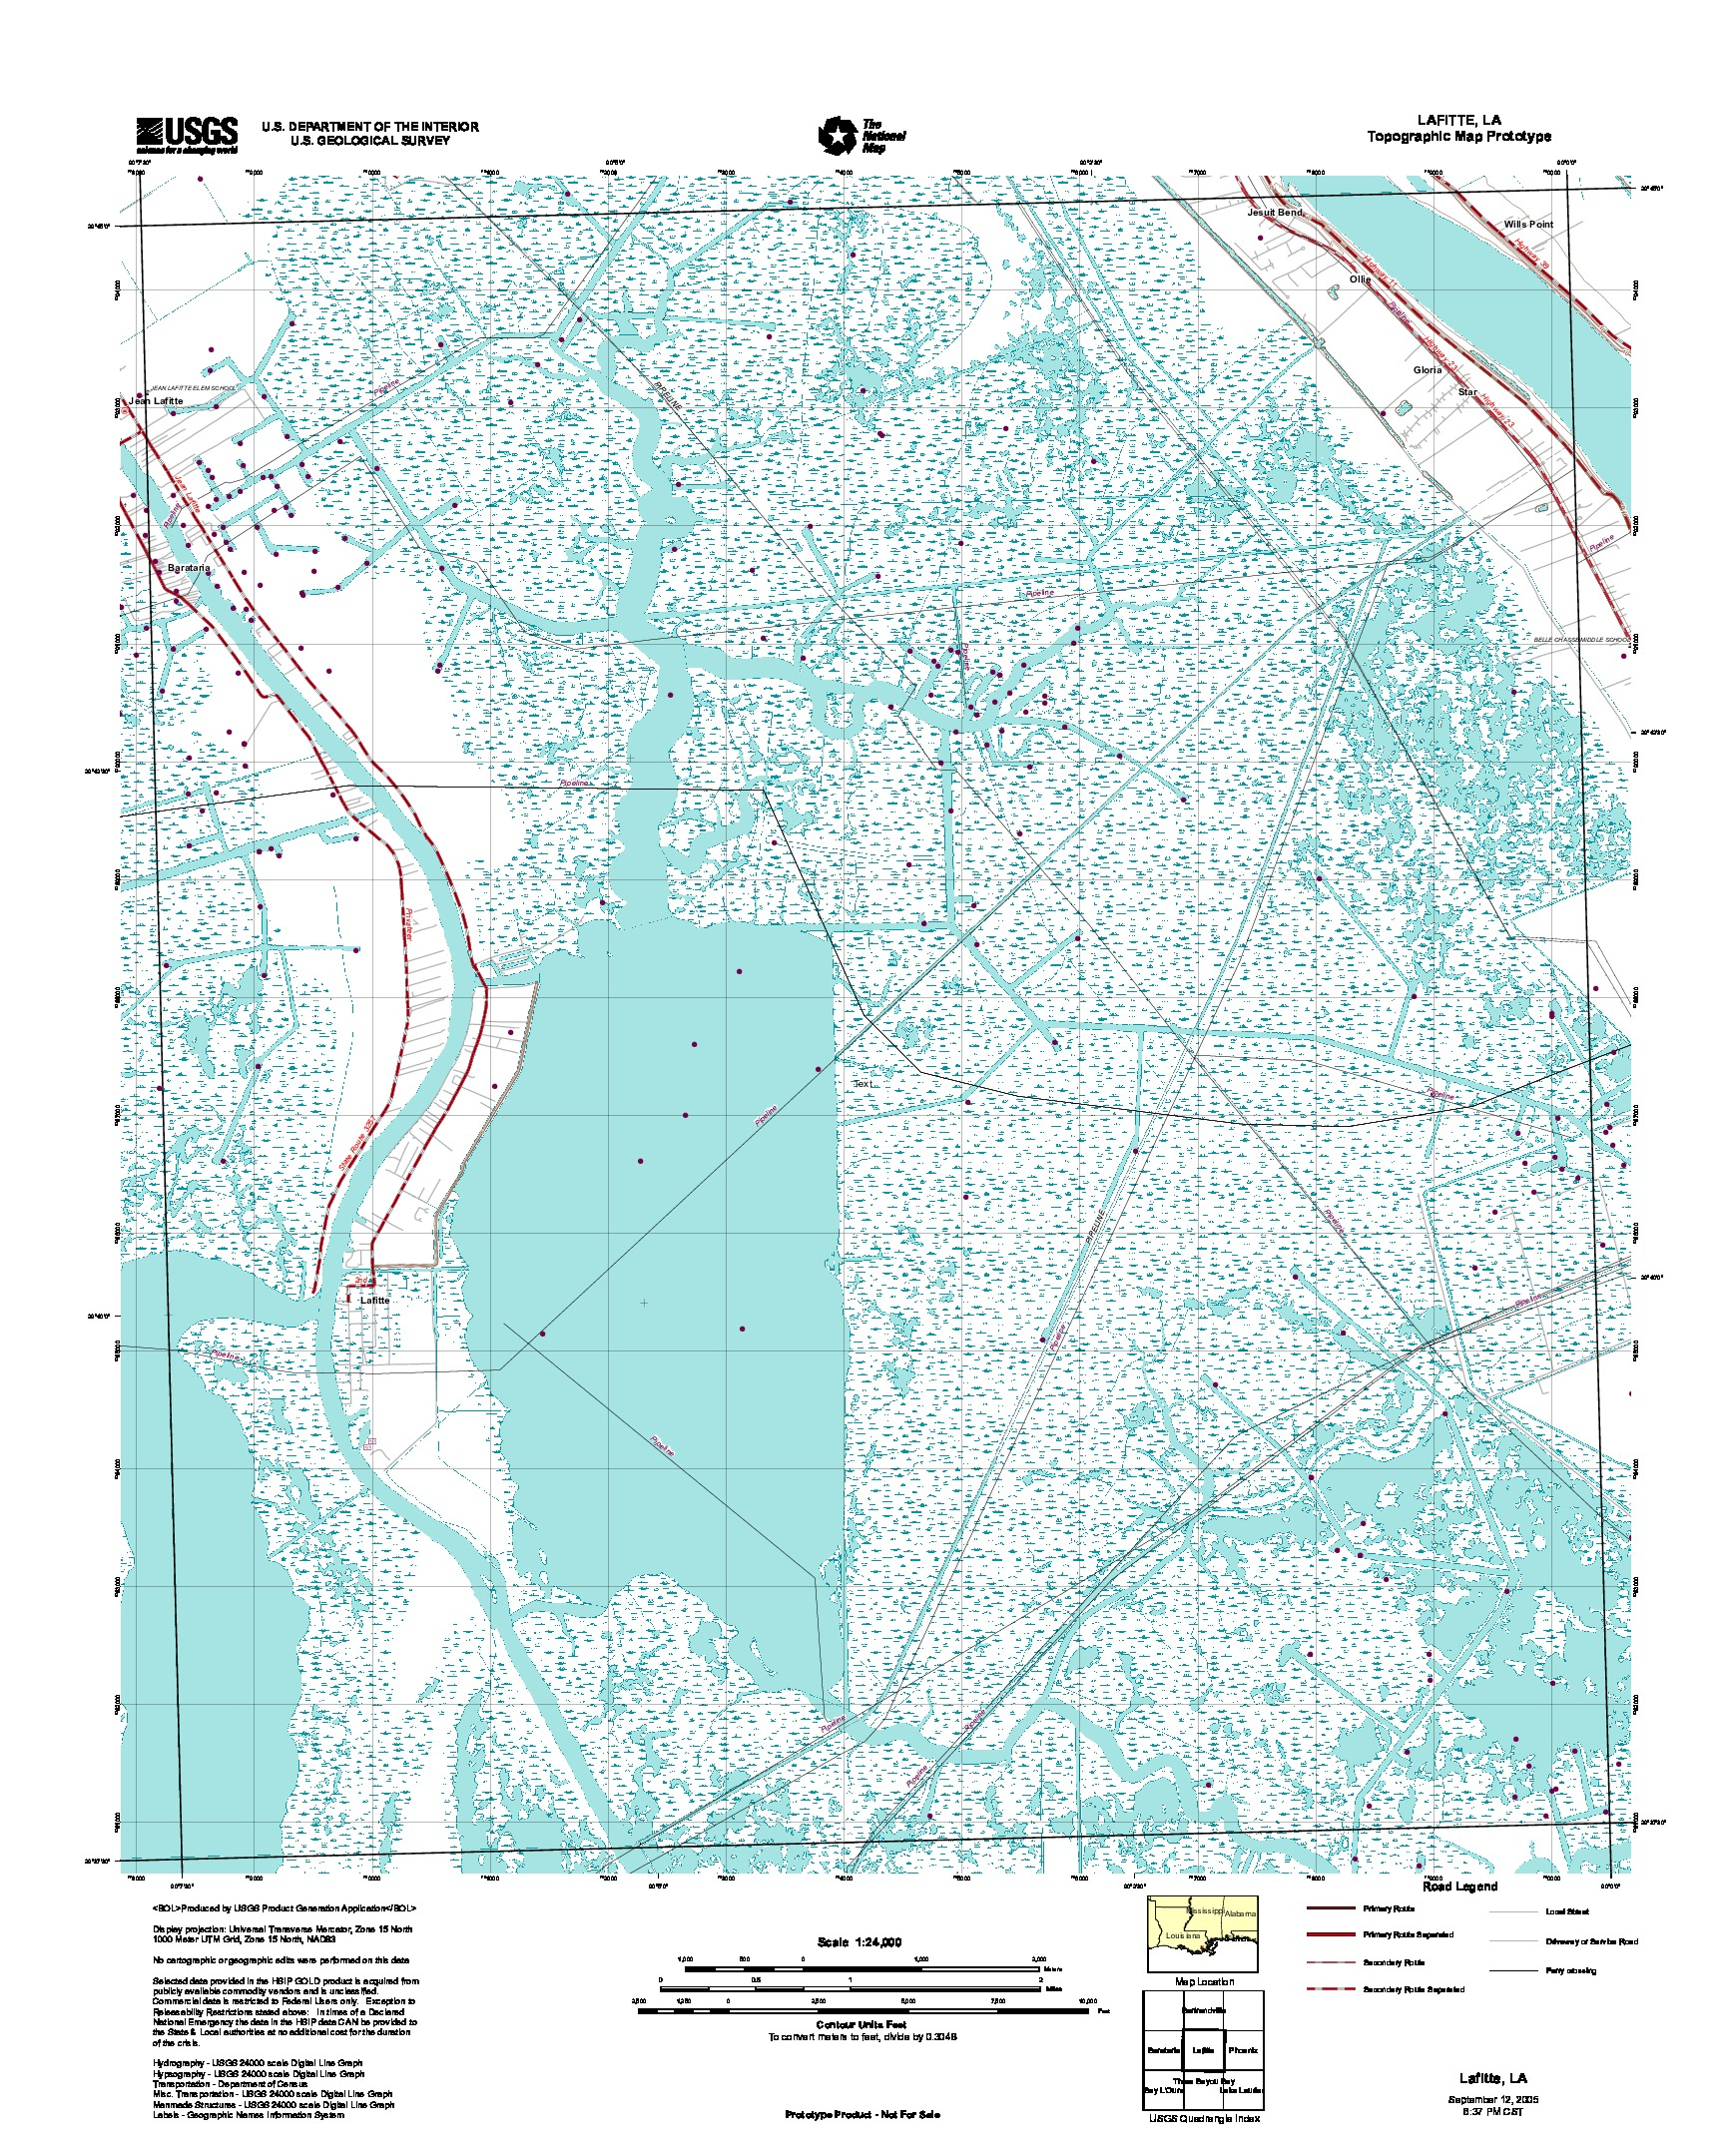 Lafitte, Topographic Map Prototype, Louisiana, United States, September 12, 2005